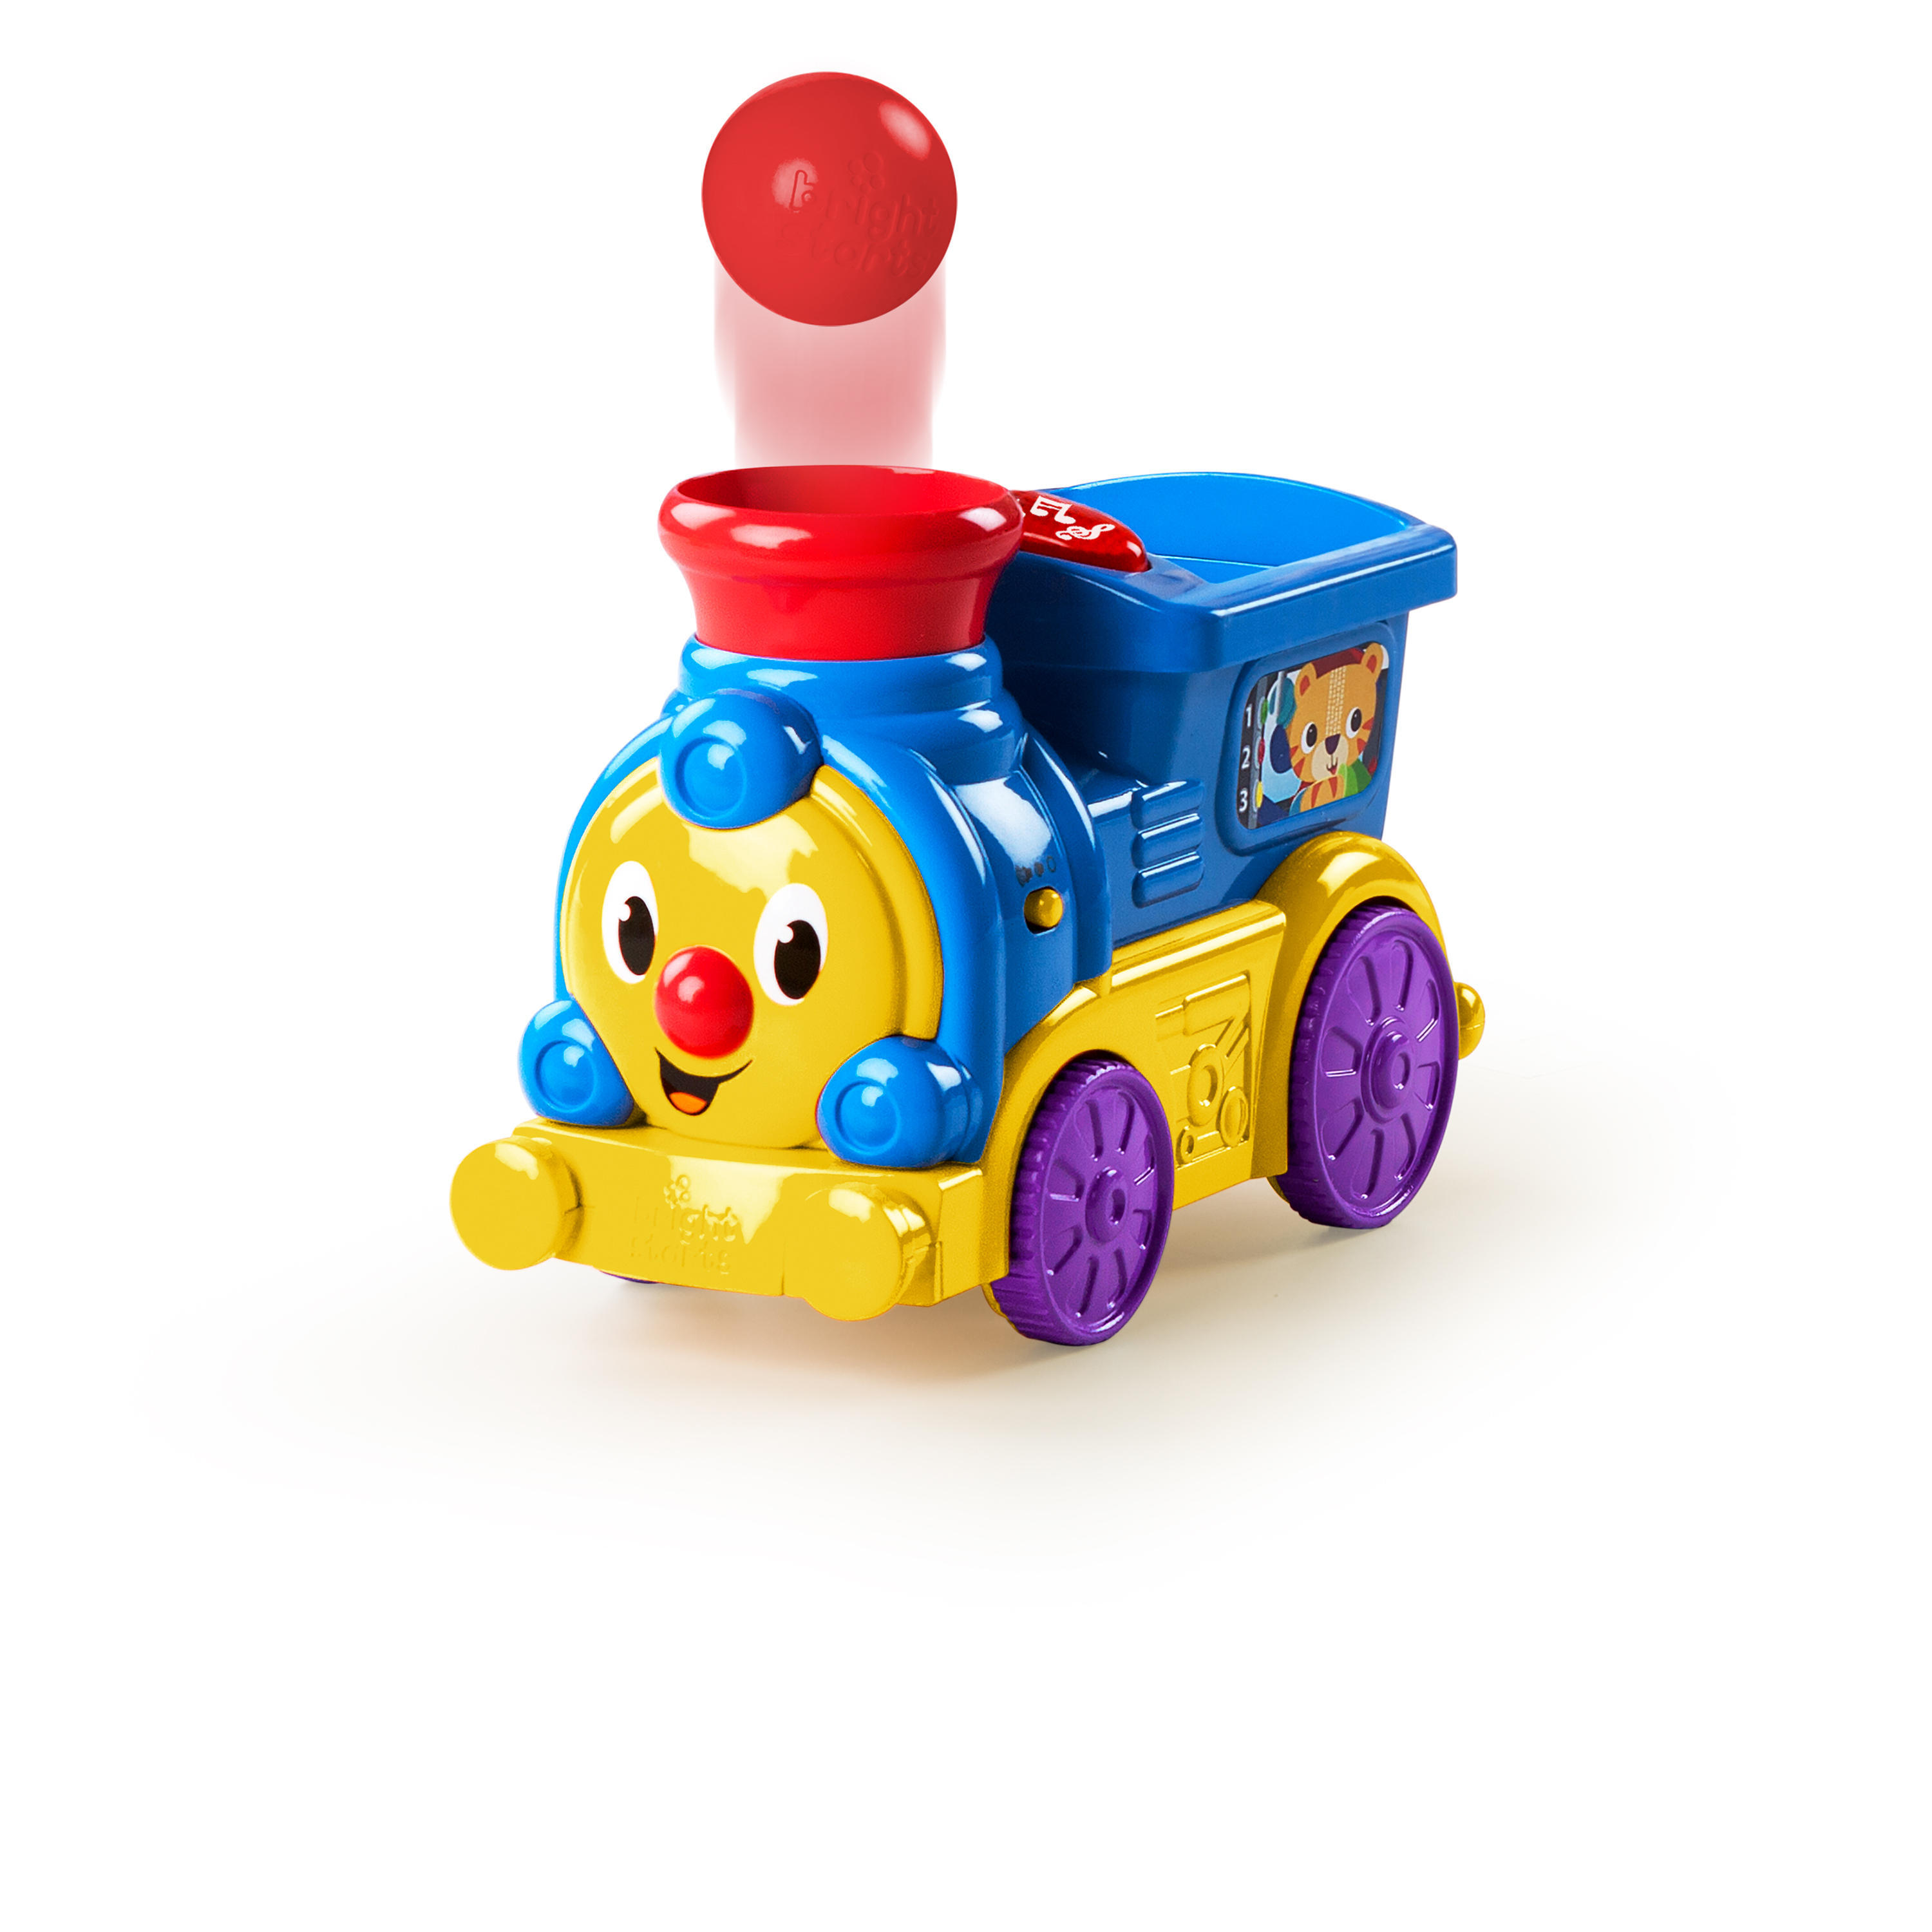 Bright Starts Roll & Pop Train Toy by Bright Starts